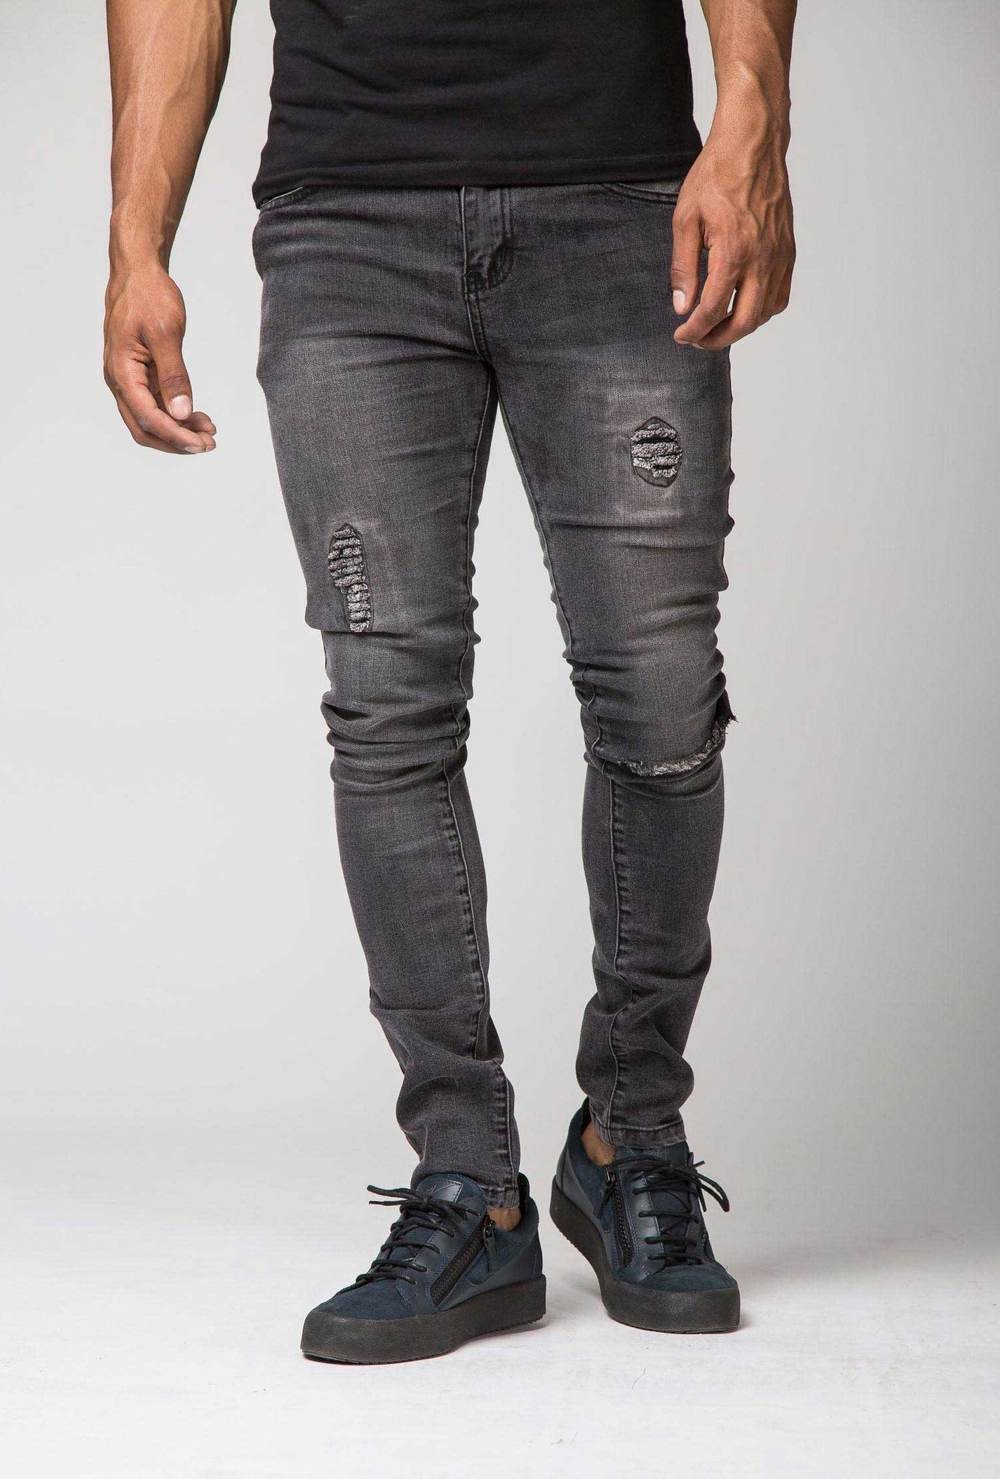 Section Clo Templar Ripped & Repaired Jeans - Grey